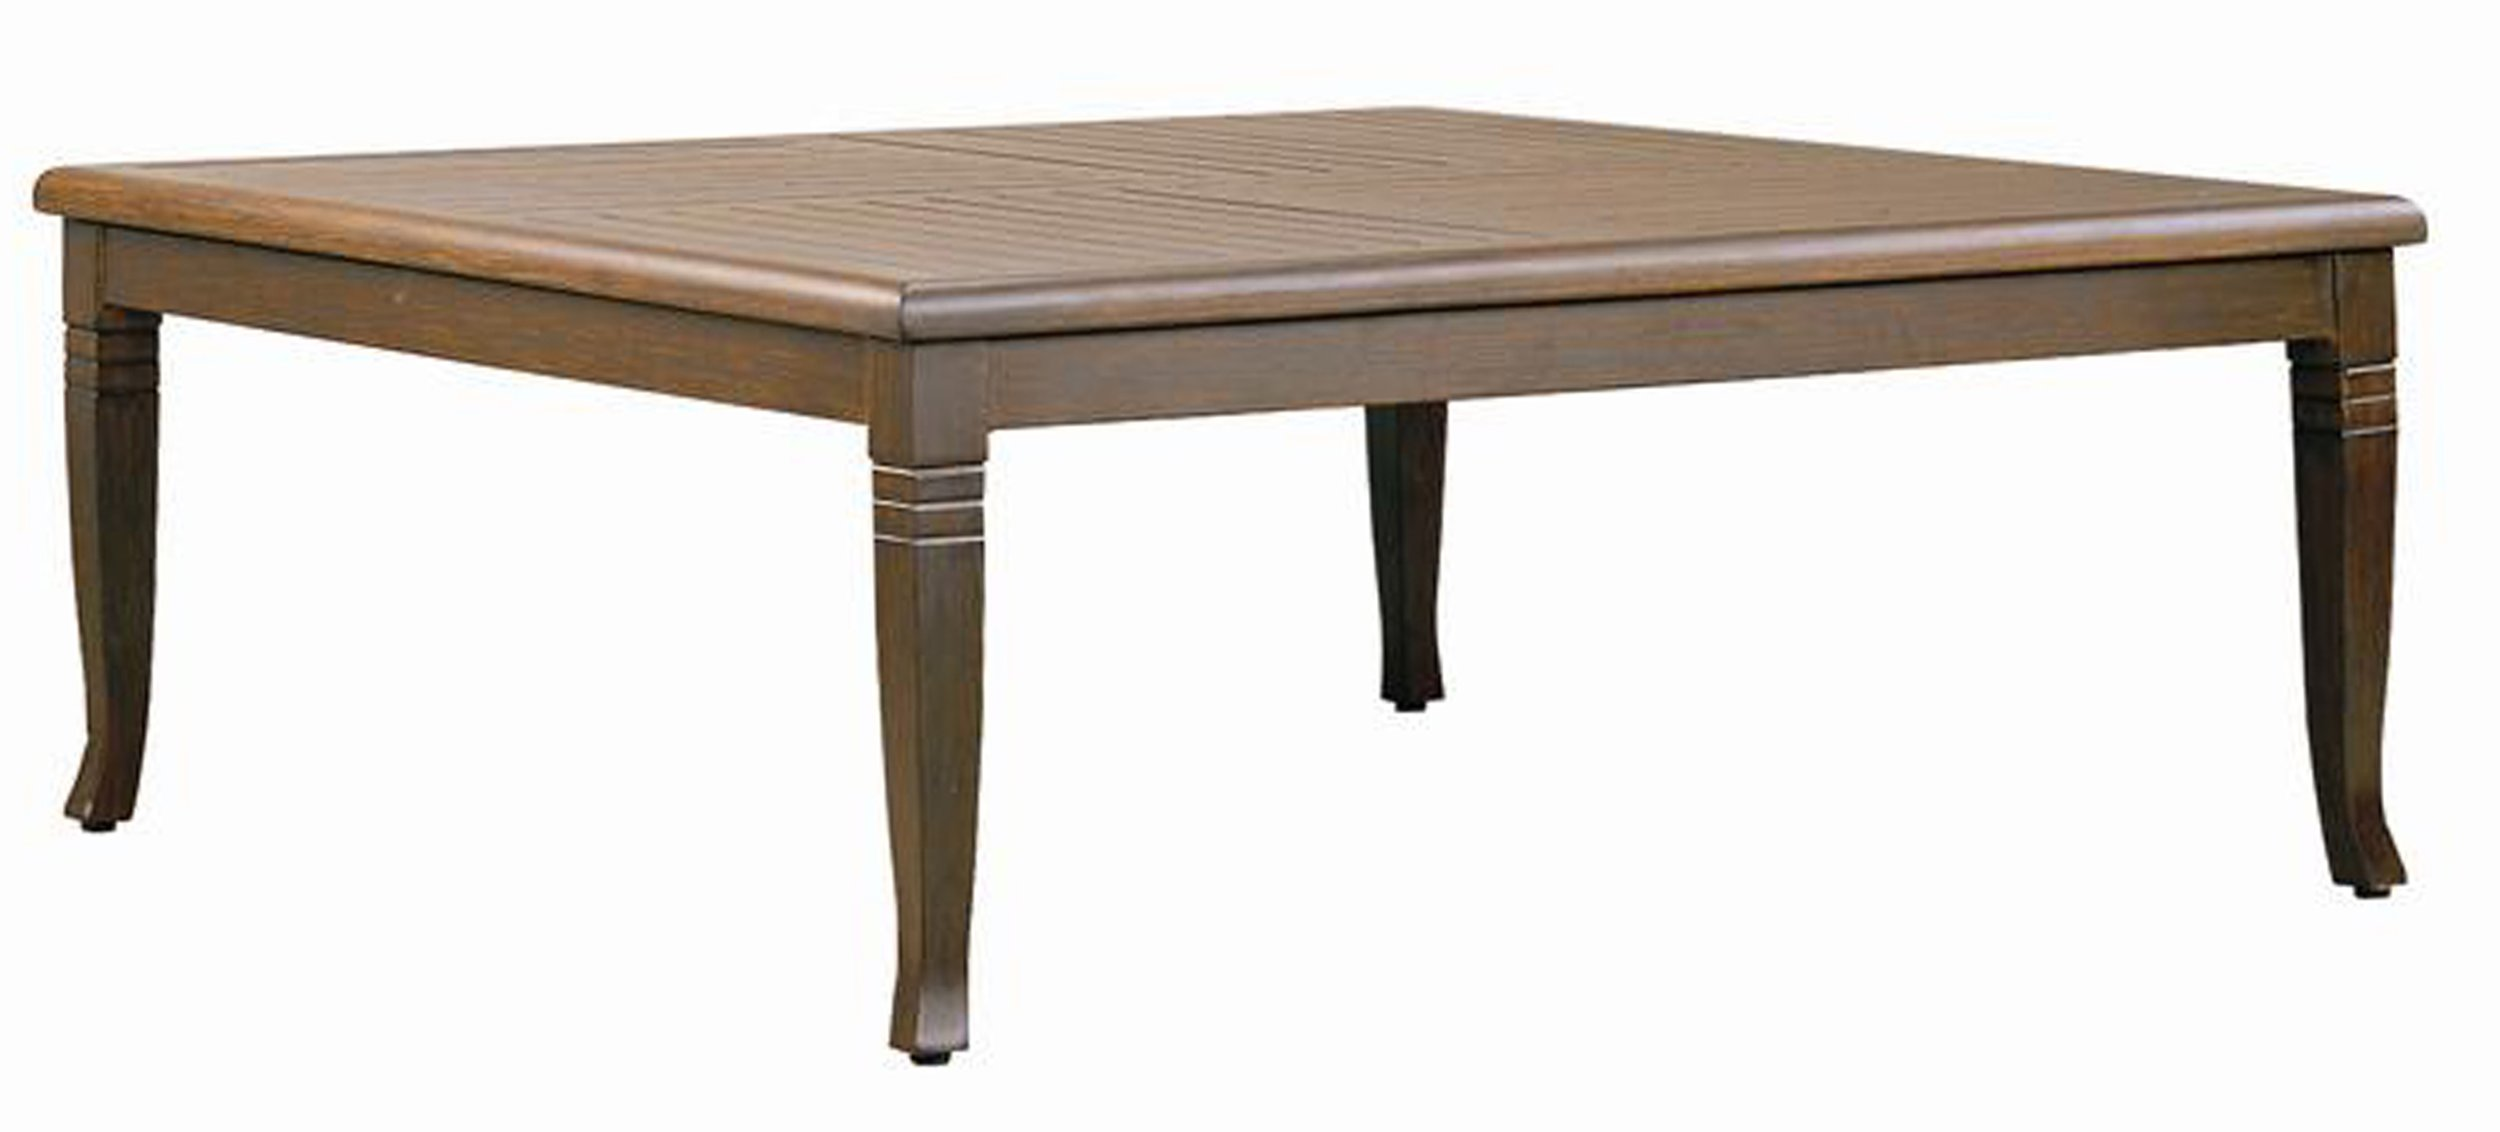 "971250B Catalina 48"" Square Coffee Table Base  (Base only) * See Book  (Top : W-48S Farnham Aluminum Faux Wood Top)  47"" x 47"" x 18.7"""